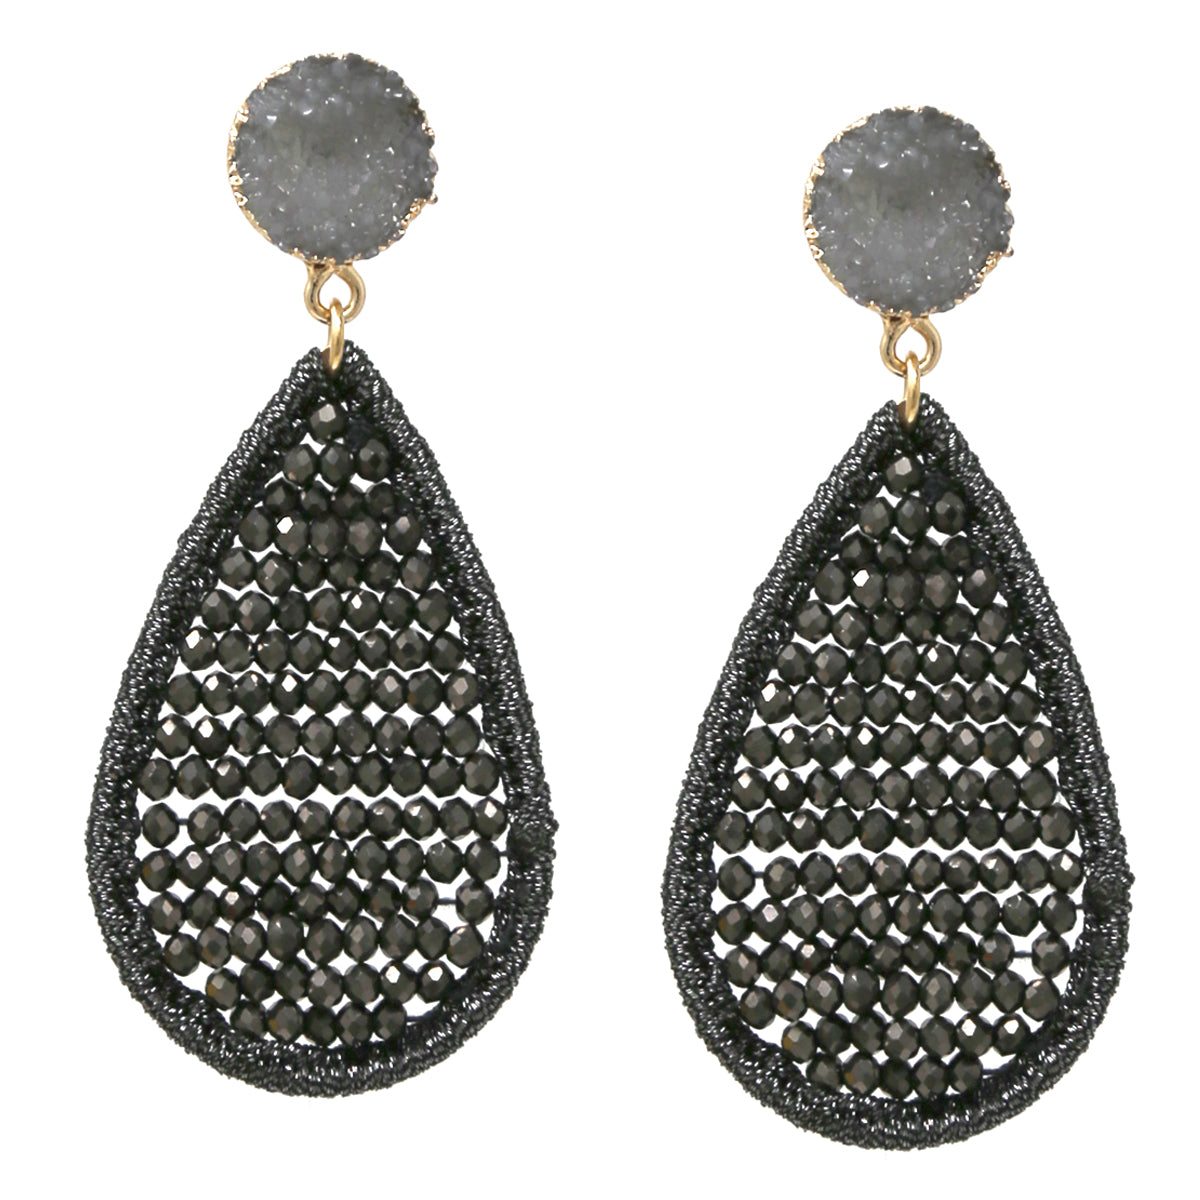 Druzy Stone Glass Beaded Teardrop Earrings